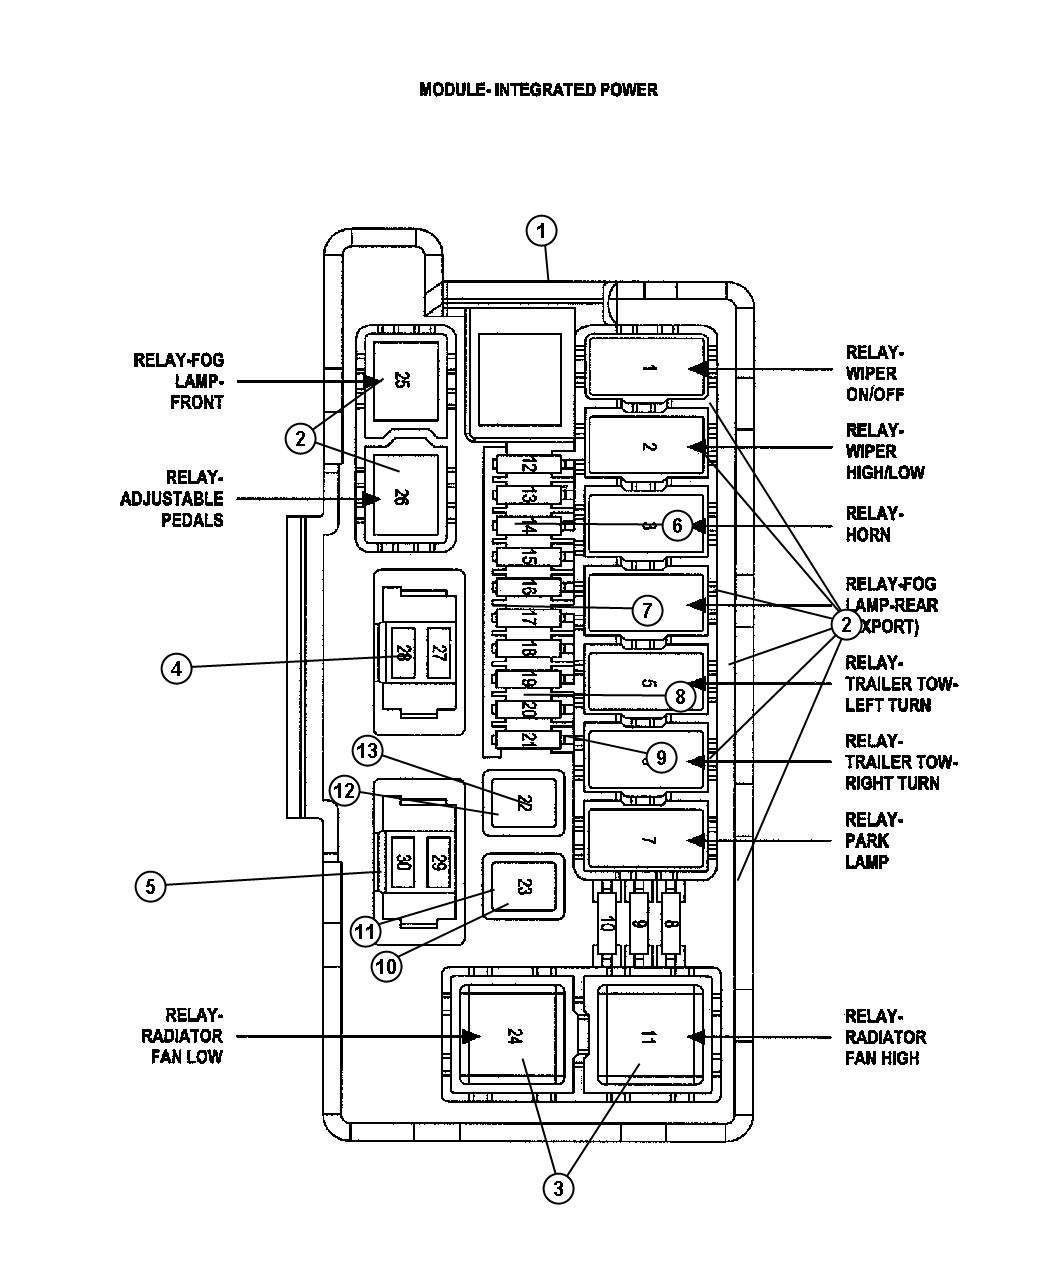 ShowAssembly on 1998 Jeep Wrangler Brake Lights Wiring Diagram